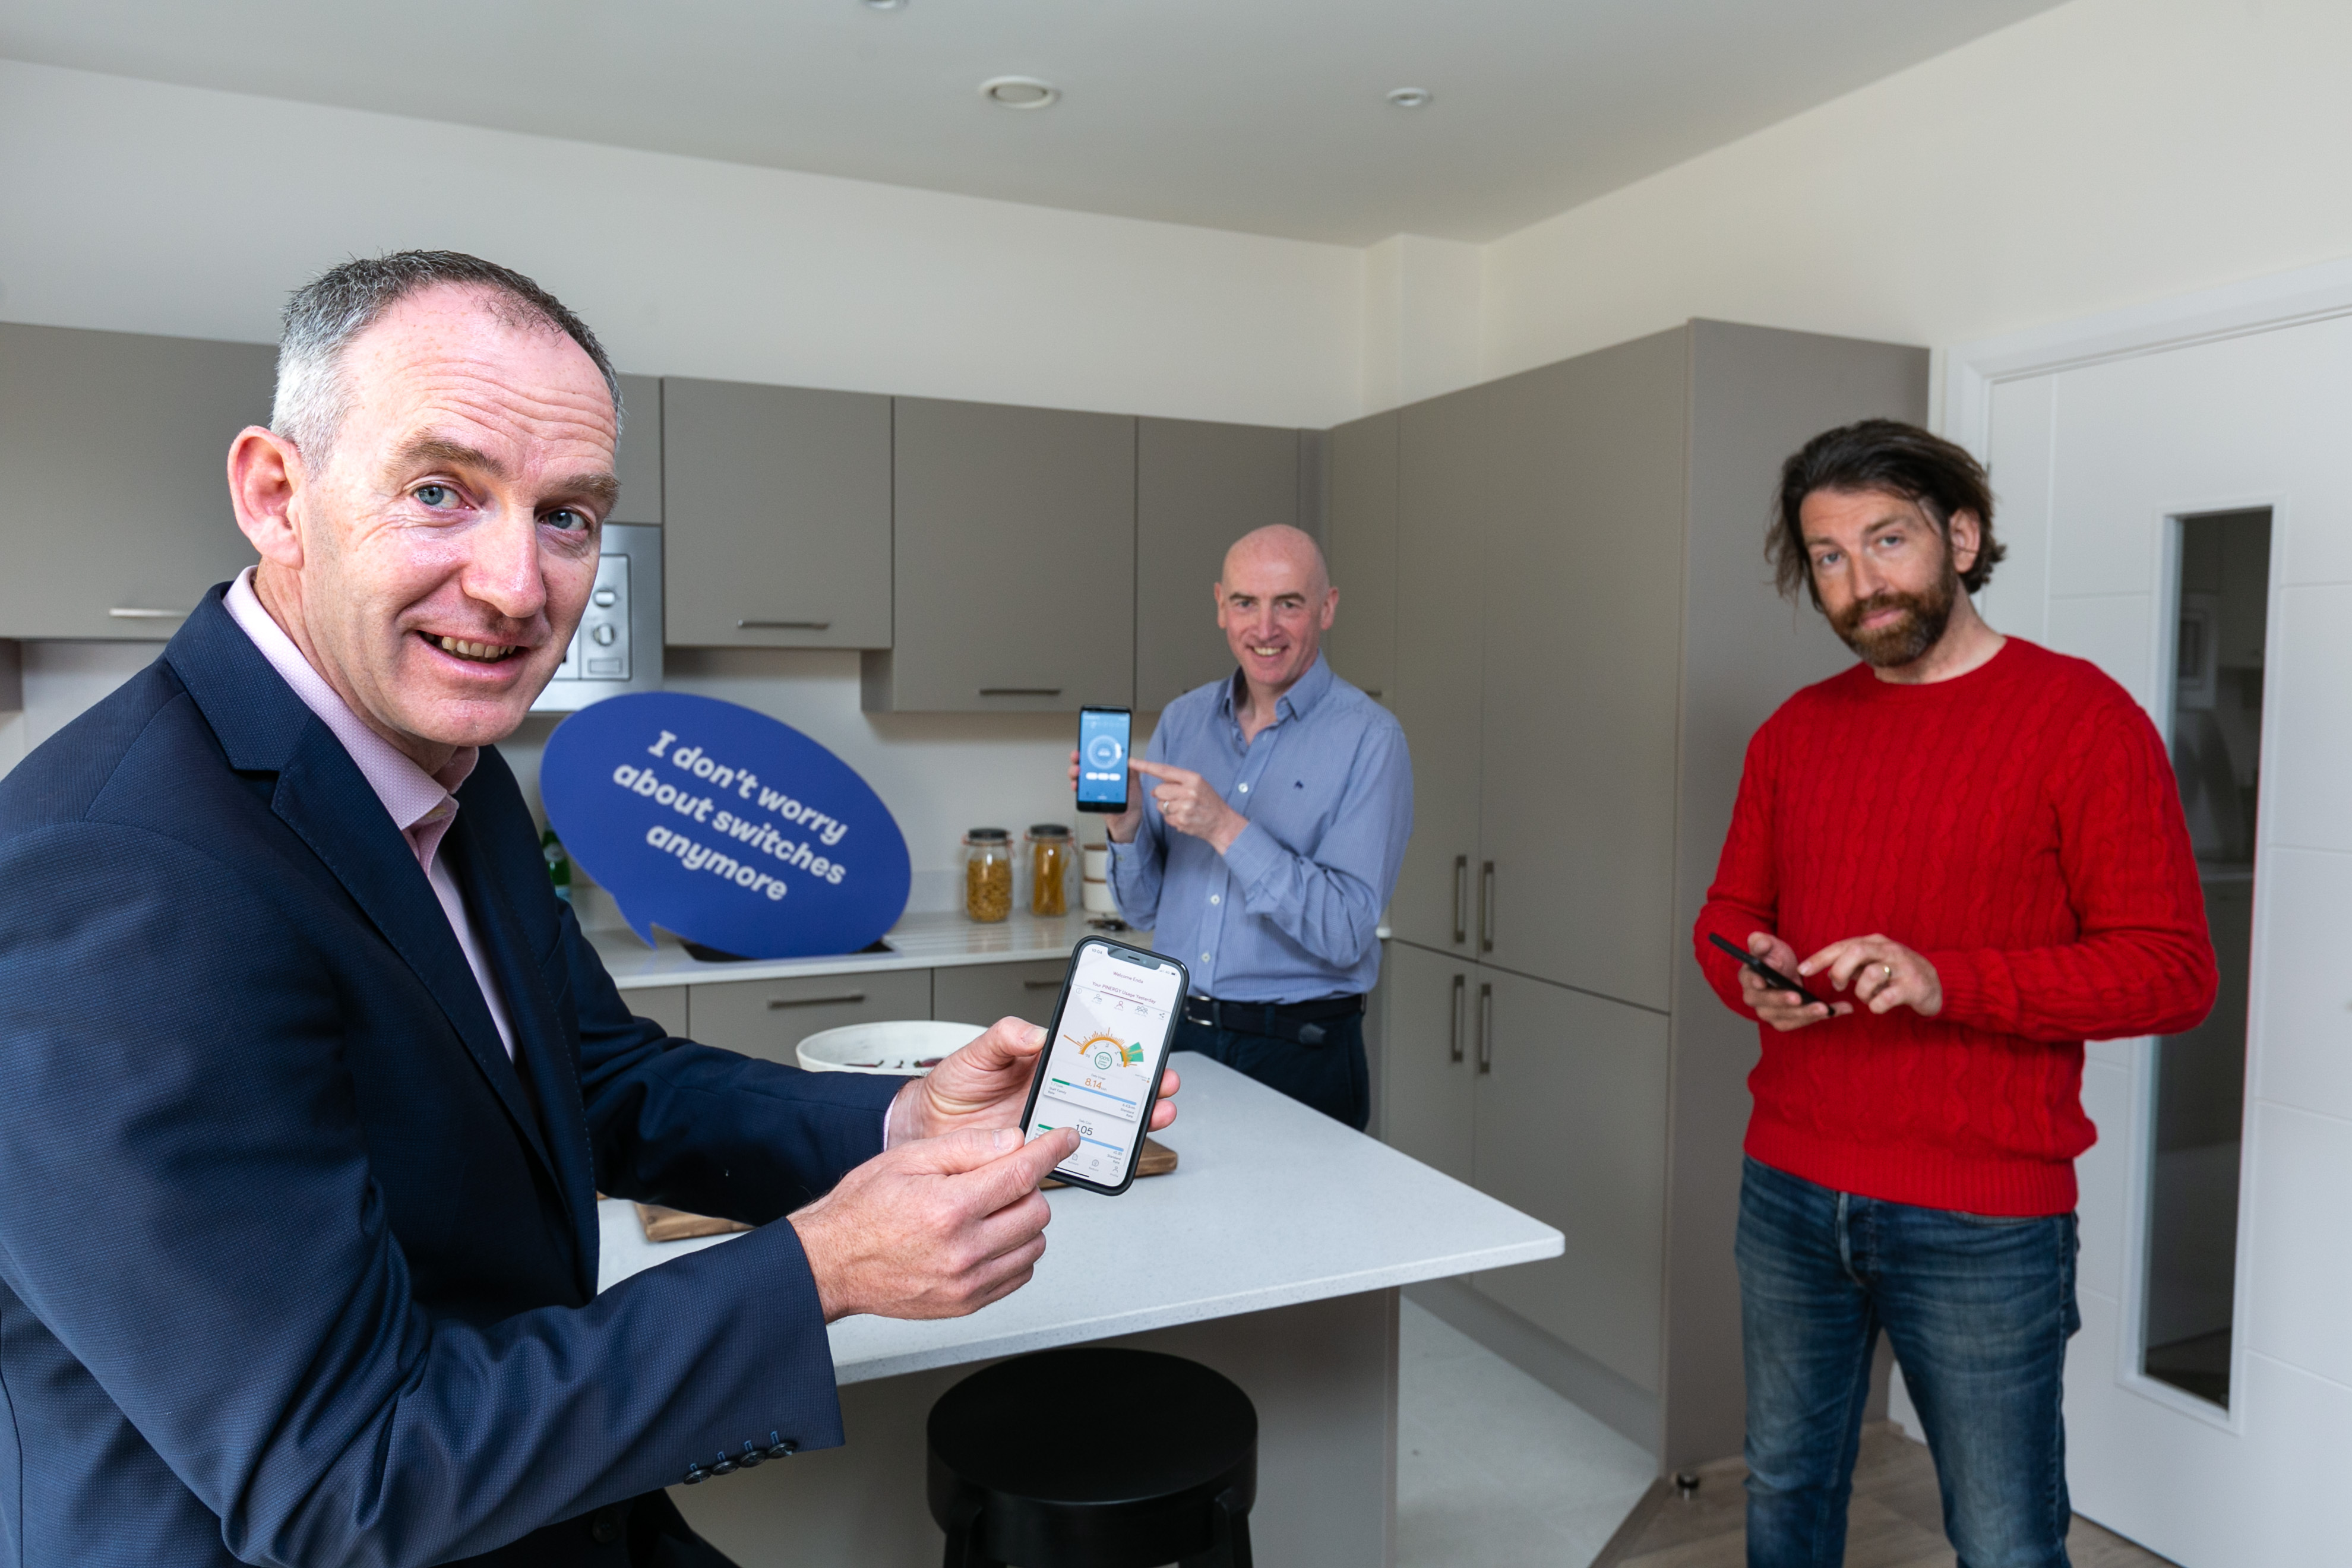 A smarter way to heat water - Pinergy and climote partner to market smart new immersion controller (From left to right) Enda Gunnell, CEO at Pinergy pictured here alongside Eamon Conway, Managing Director of climote and Irish comedian, Colm O'Regan. Pinergy has announced its partnership with climote, one of Europe's leading brands in the home energy technology sector to provide Smart Immersion Controllers as part of a 'Pinergy Lifestyle H2O' plan supporting the sustainable energy needs of families with smart meters.